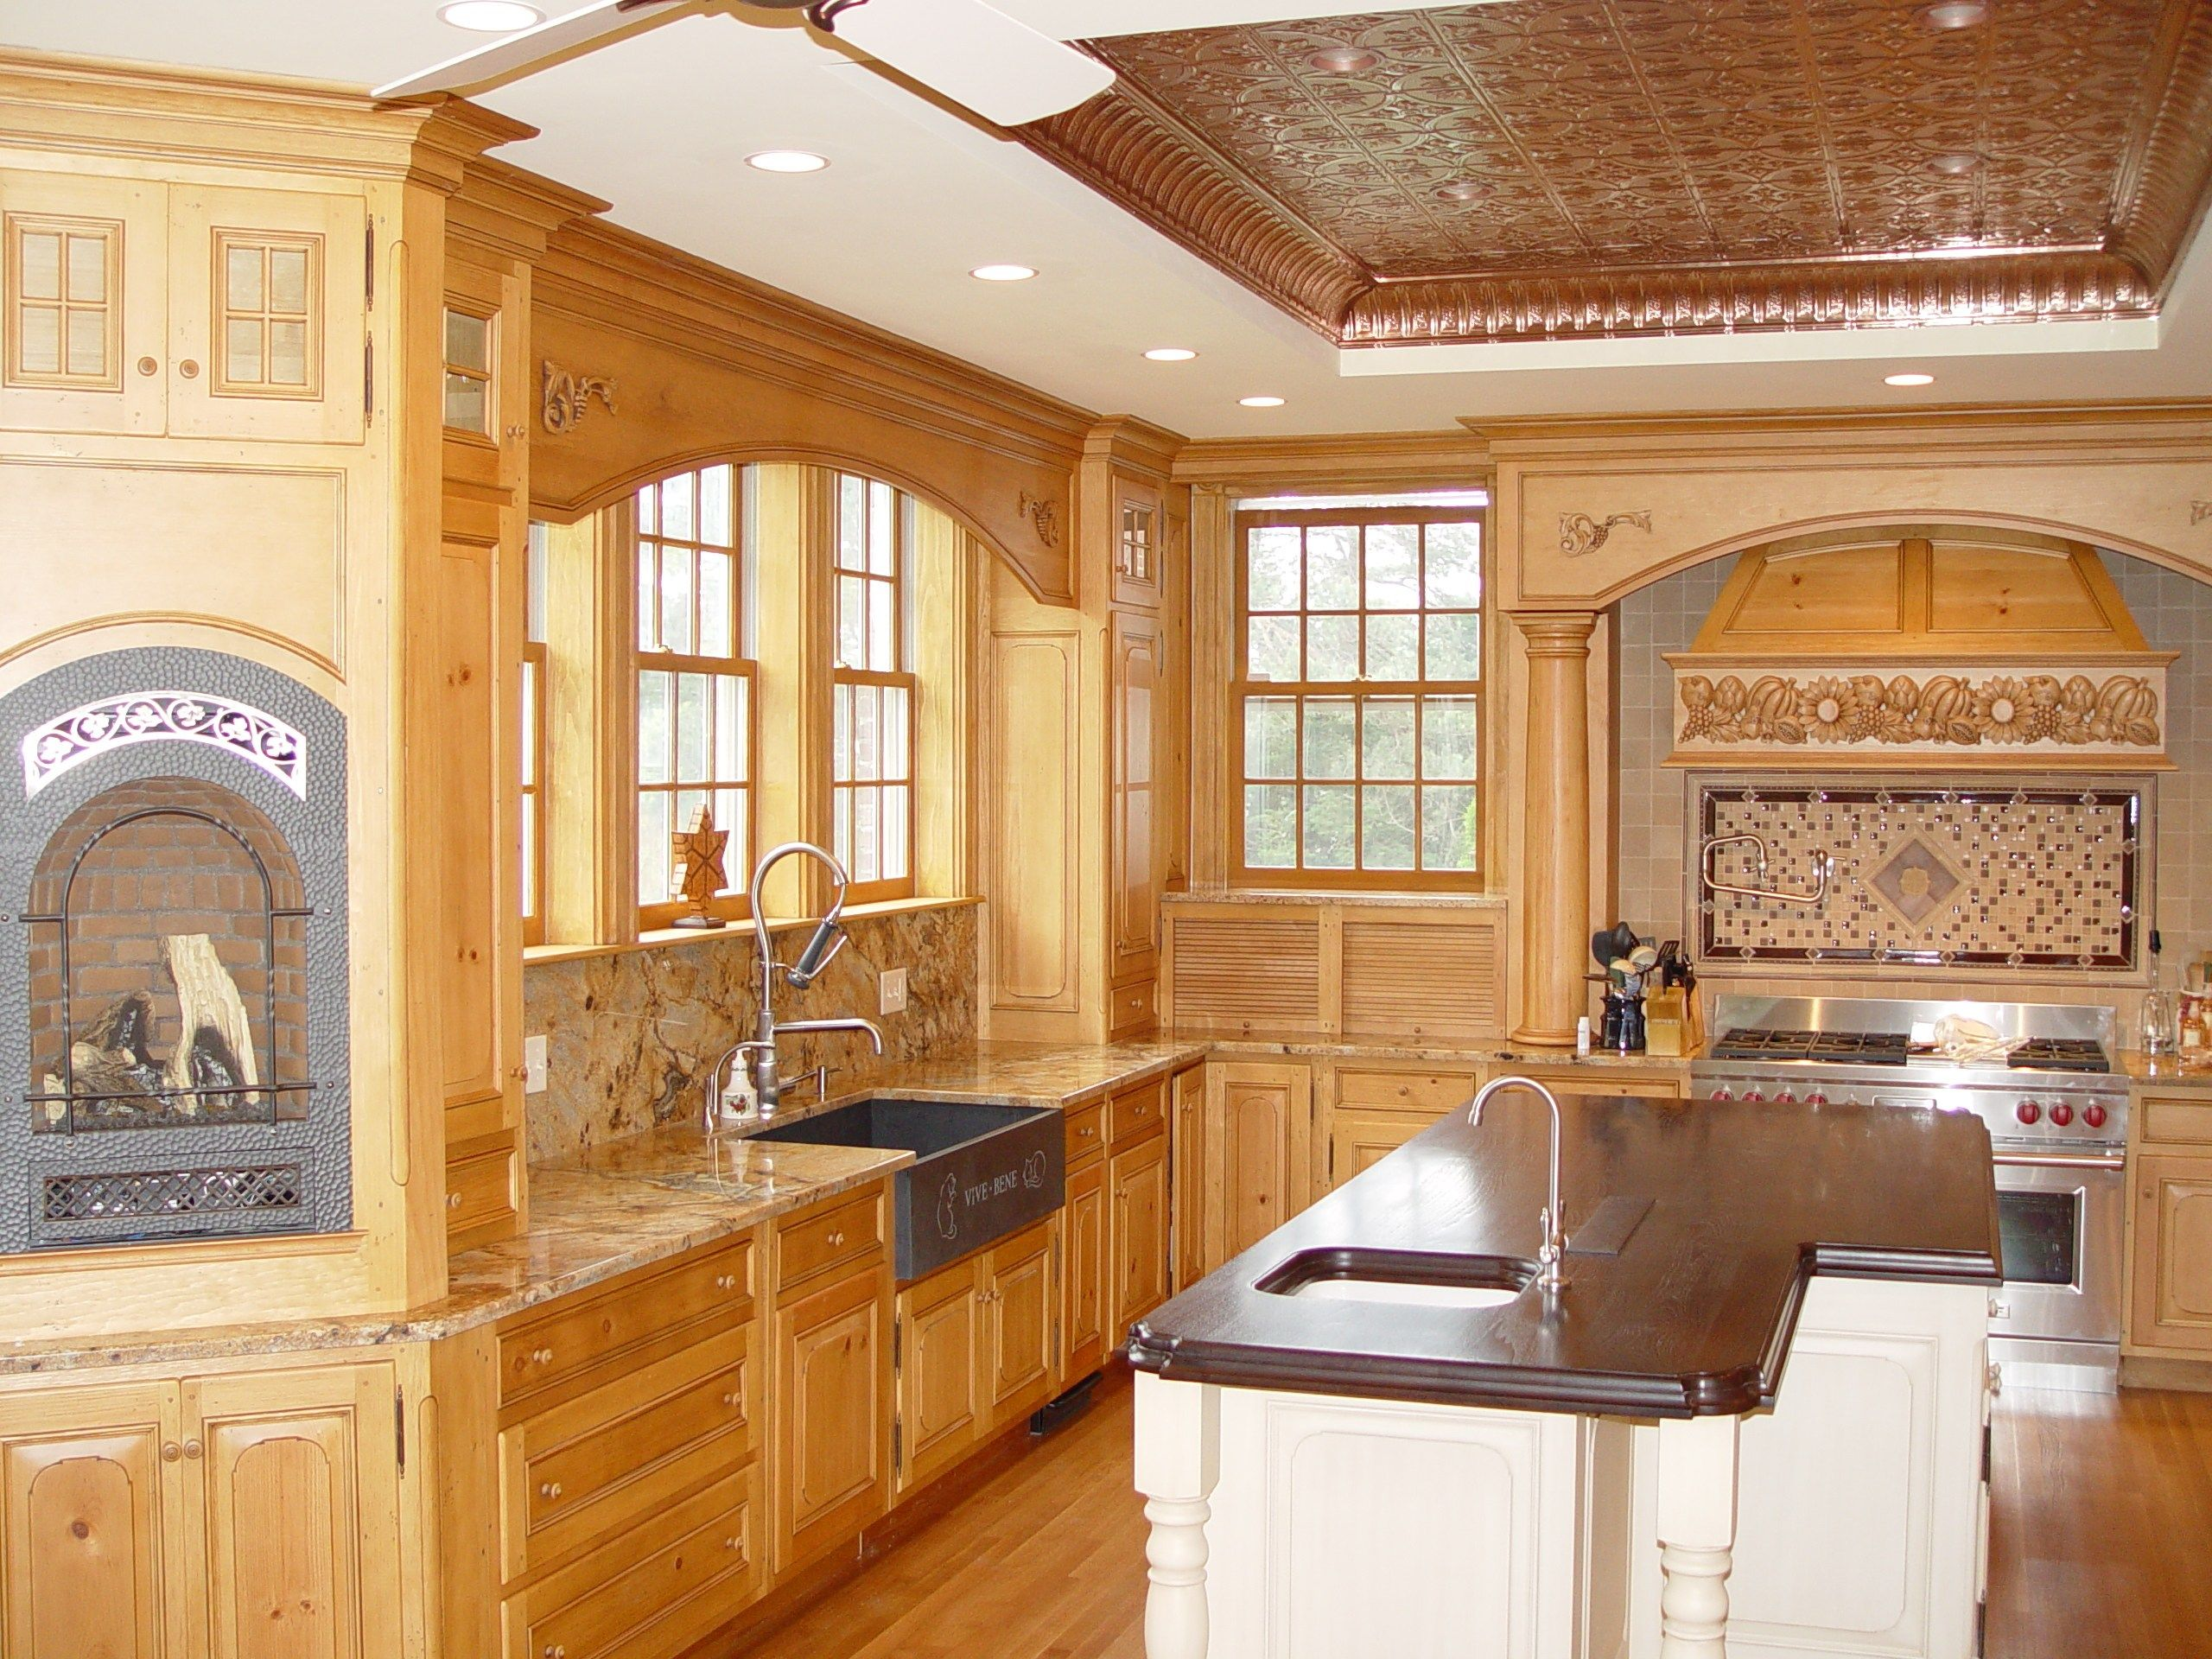 Inspirational Best Cleaner for Kitchen Cabinets